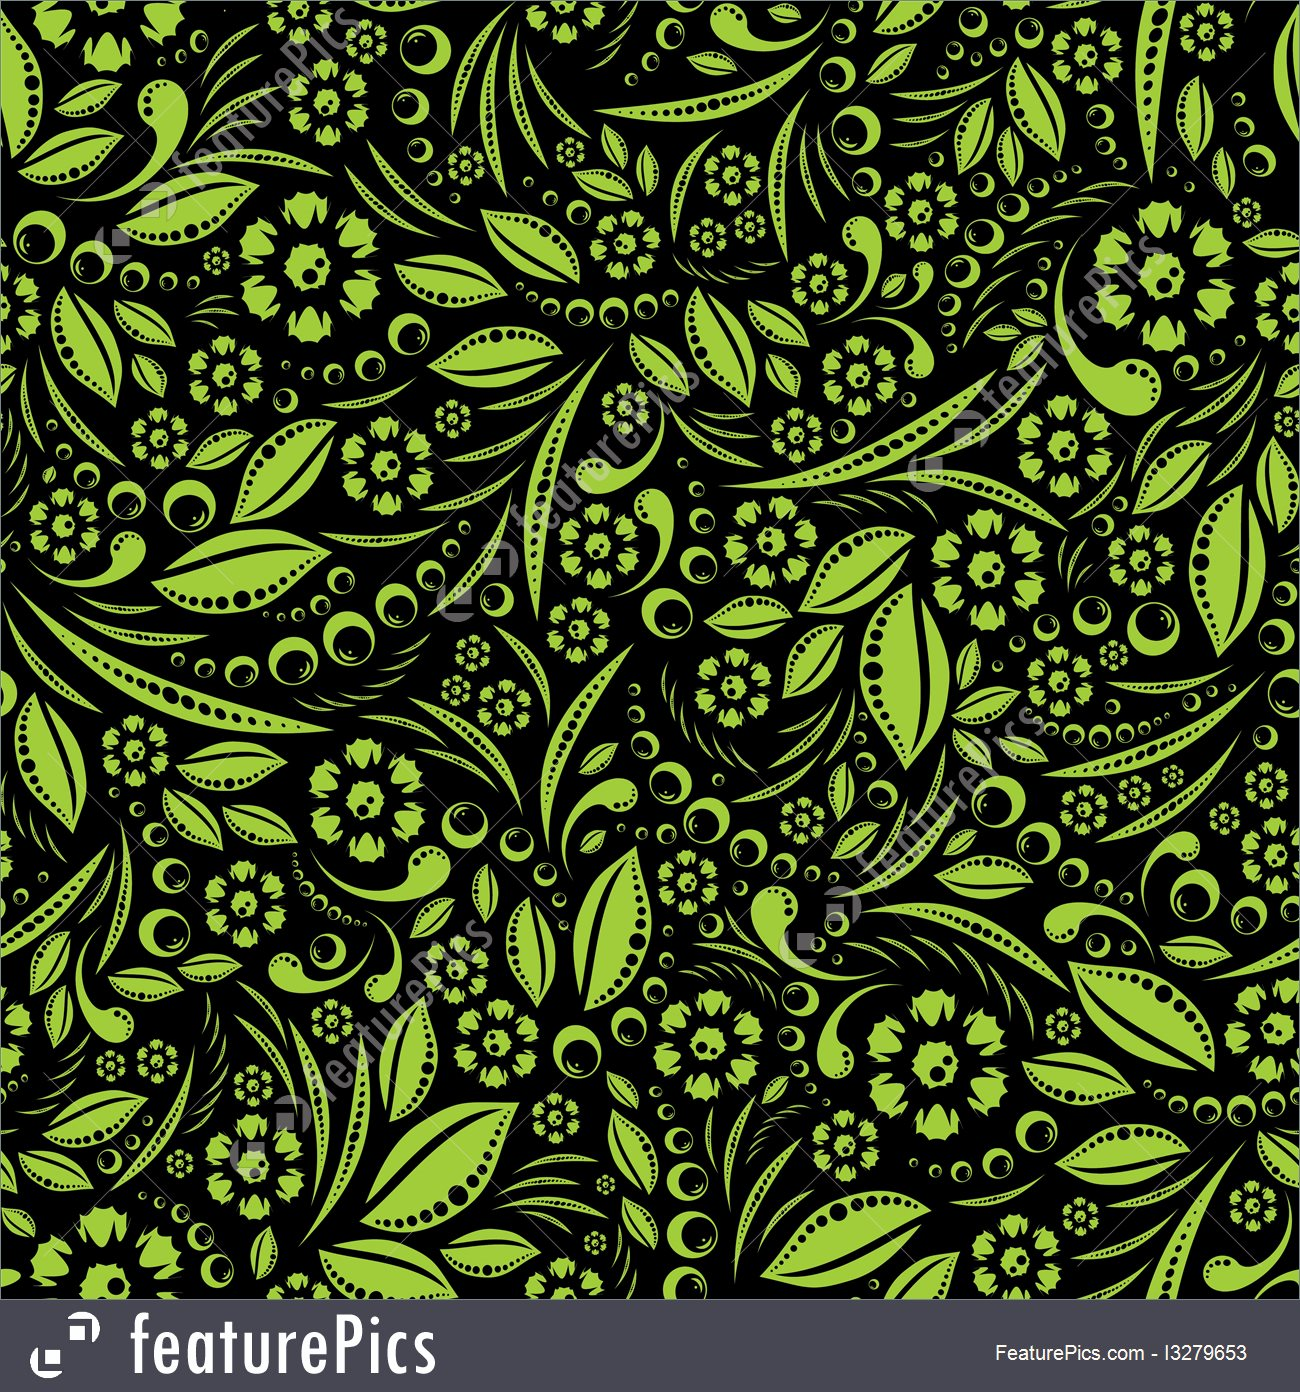 Abstract Patterns Green Vegetation Repeating Pattern   Stock 1300x1392